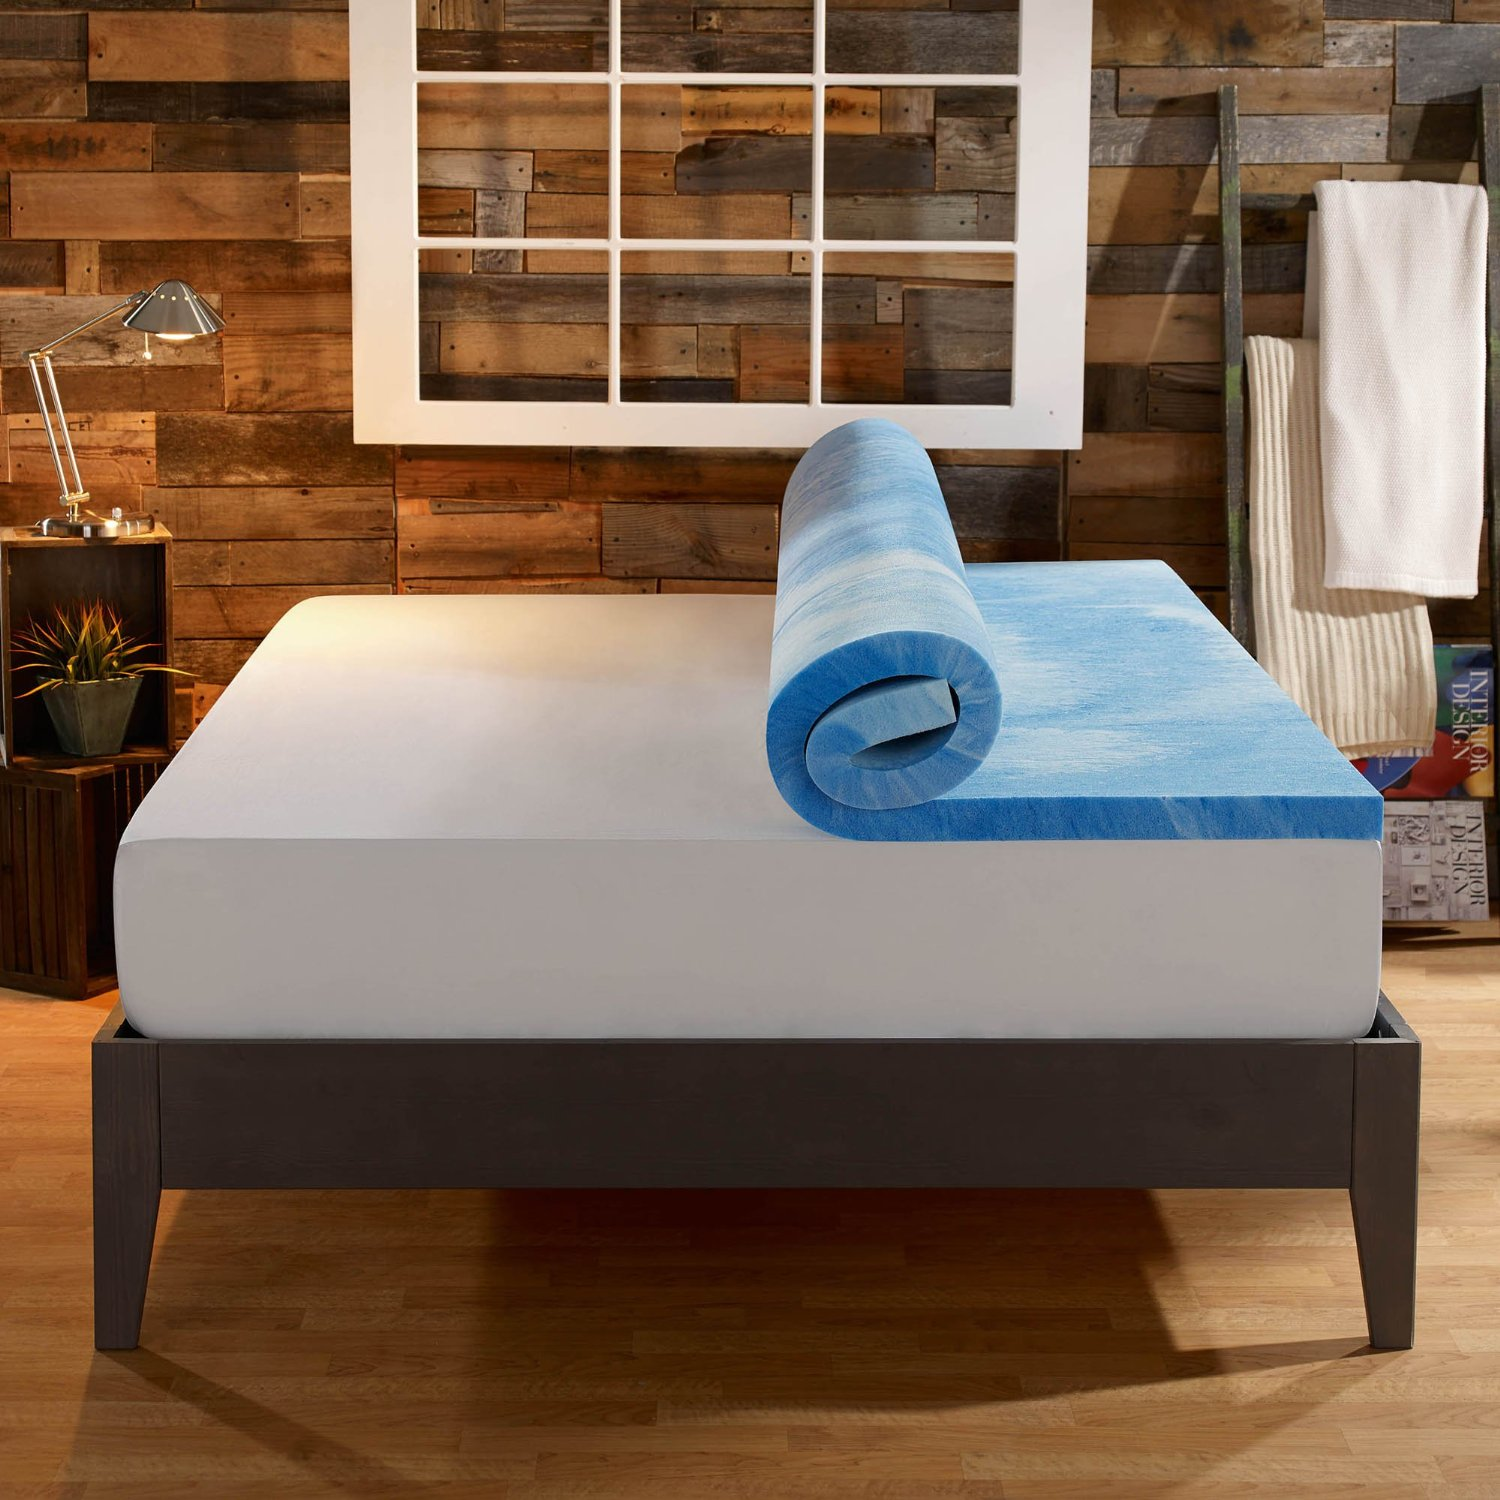 reviews of reports best category consumer mattress casper